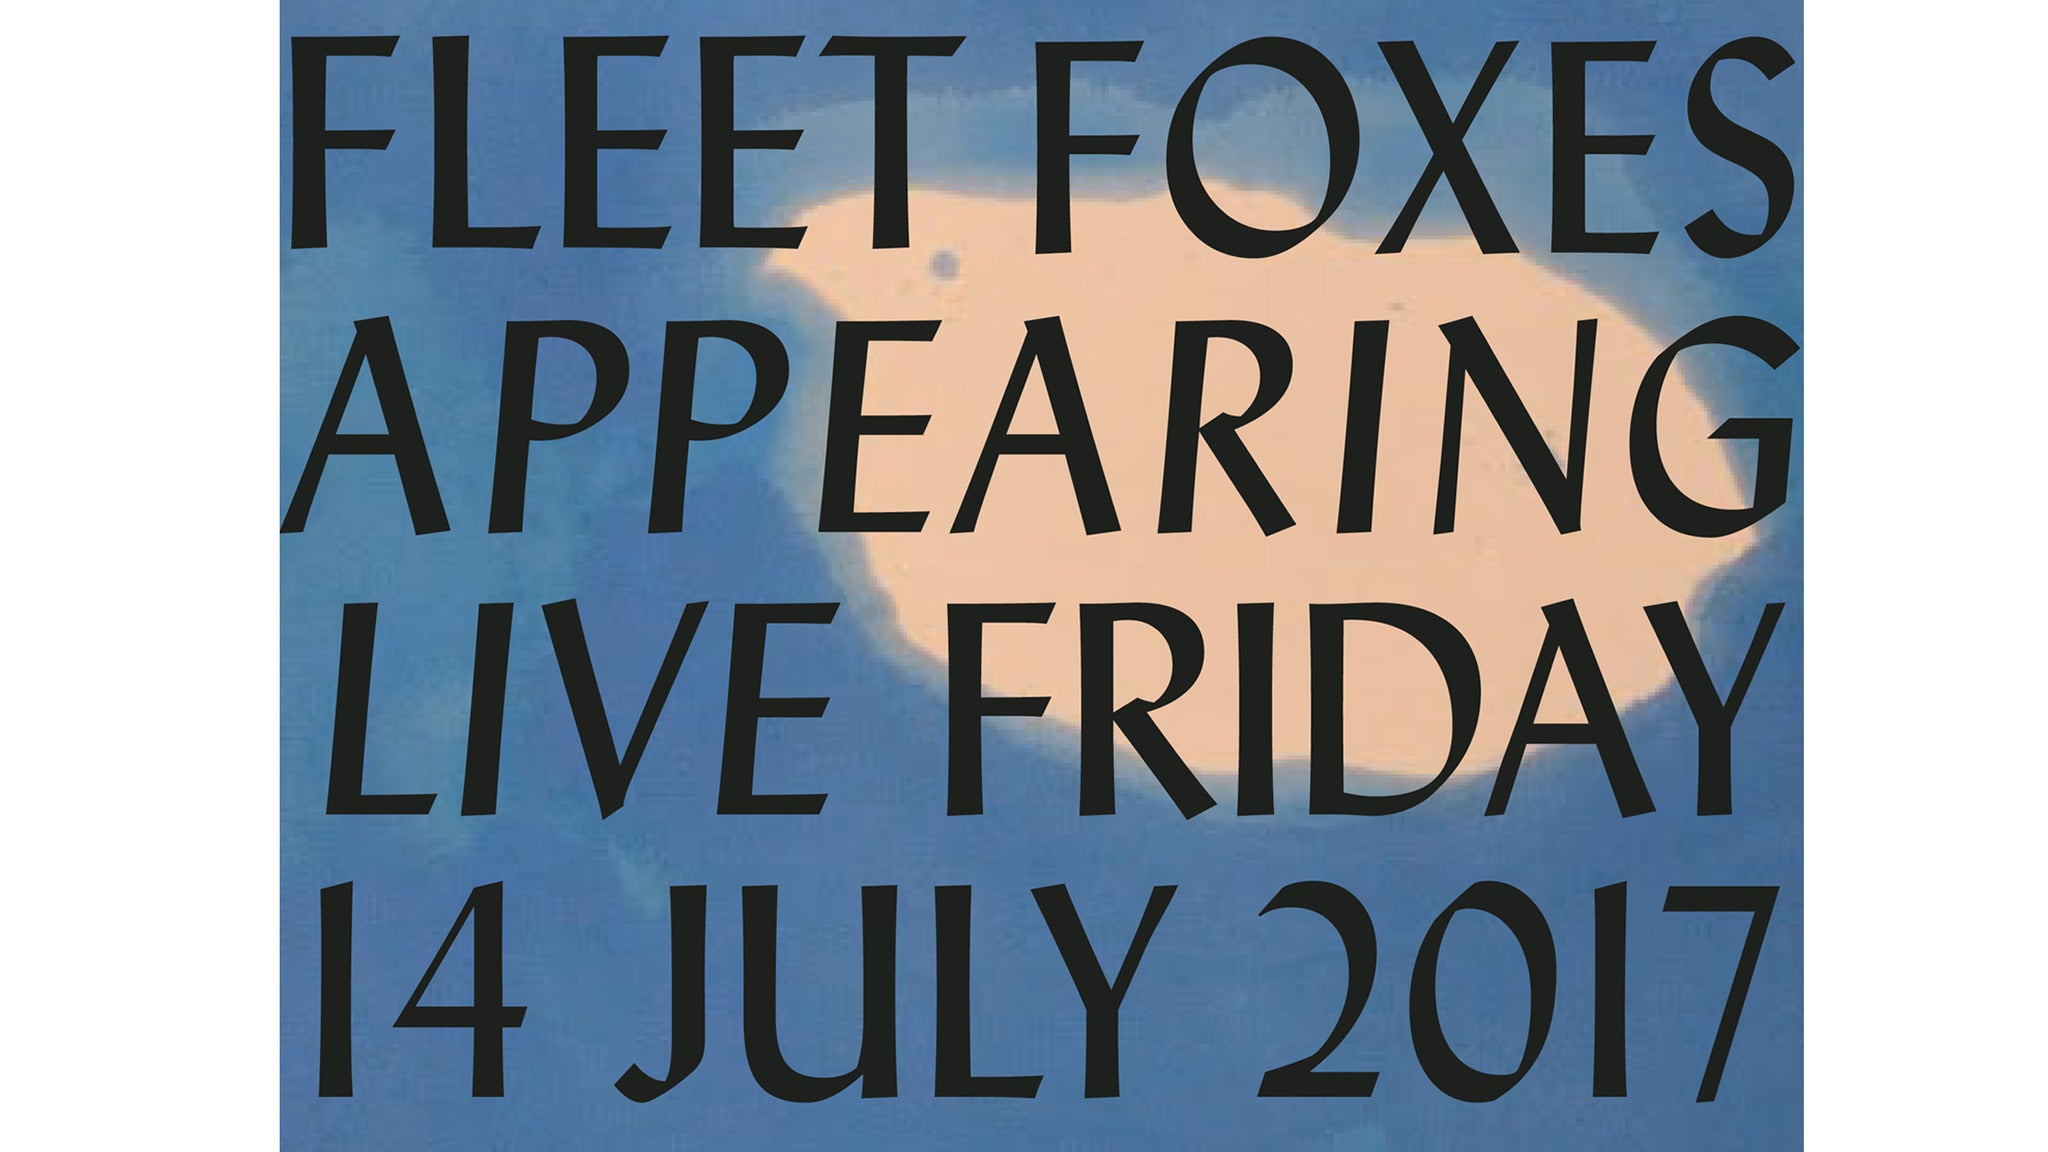 Fleet Foxes at Variety Playhouse